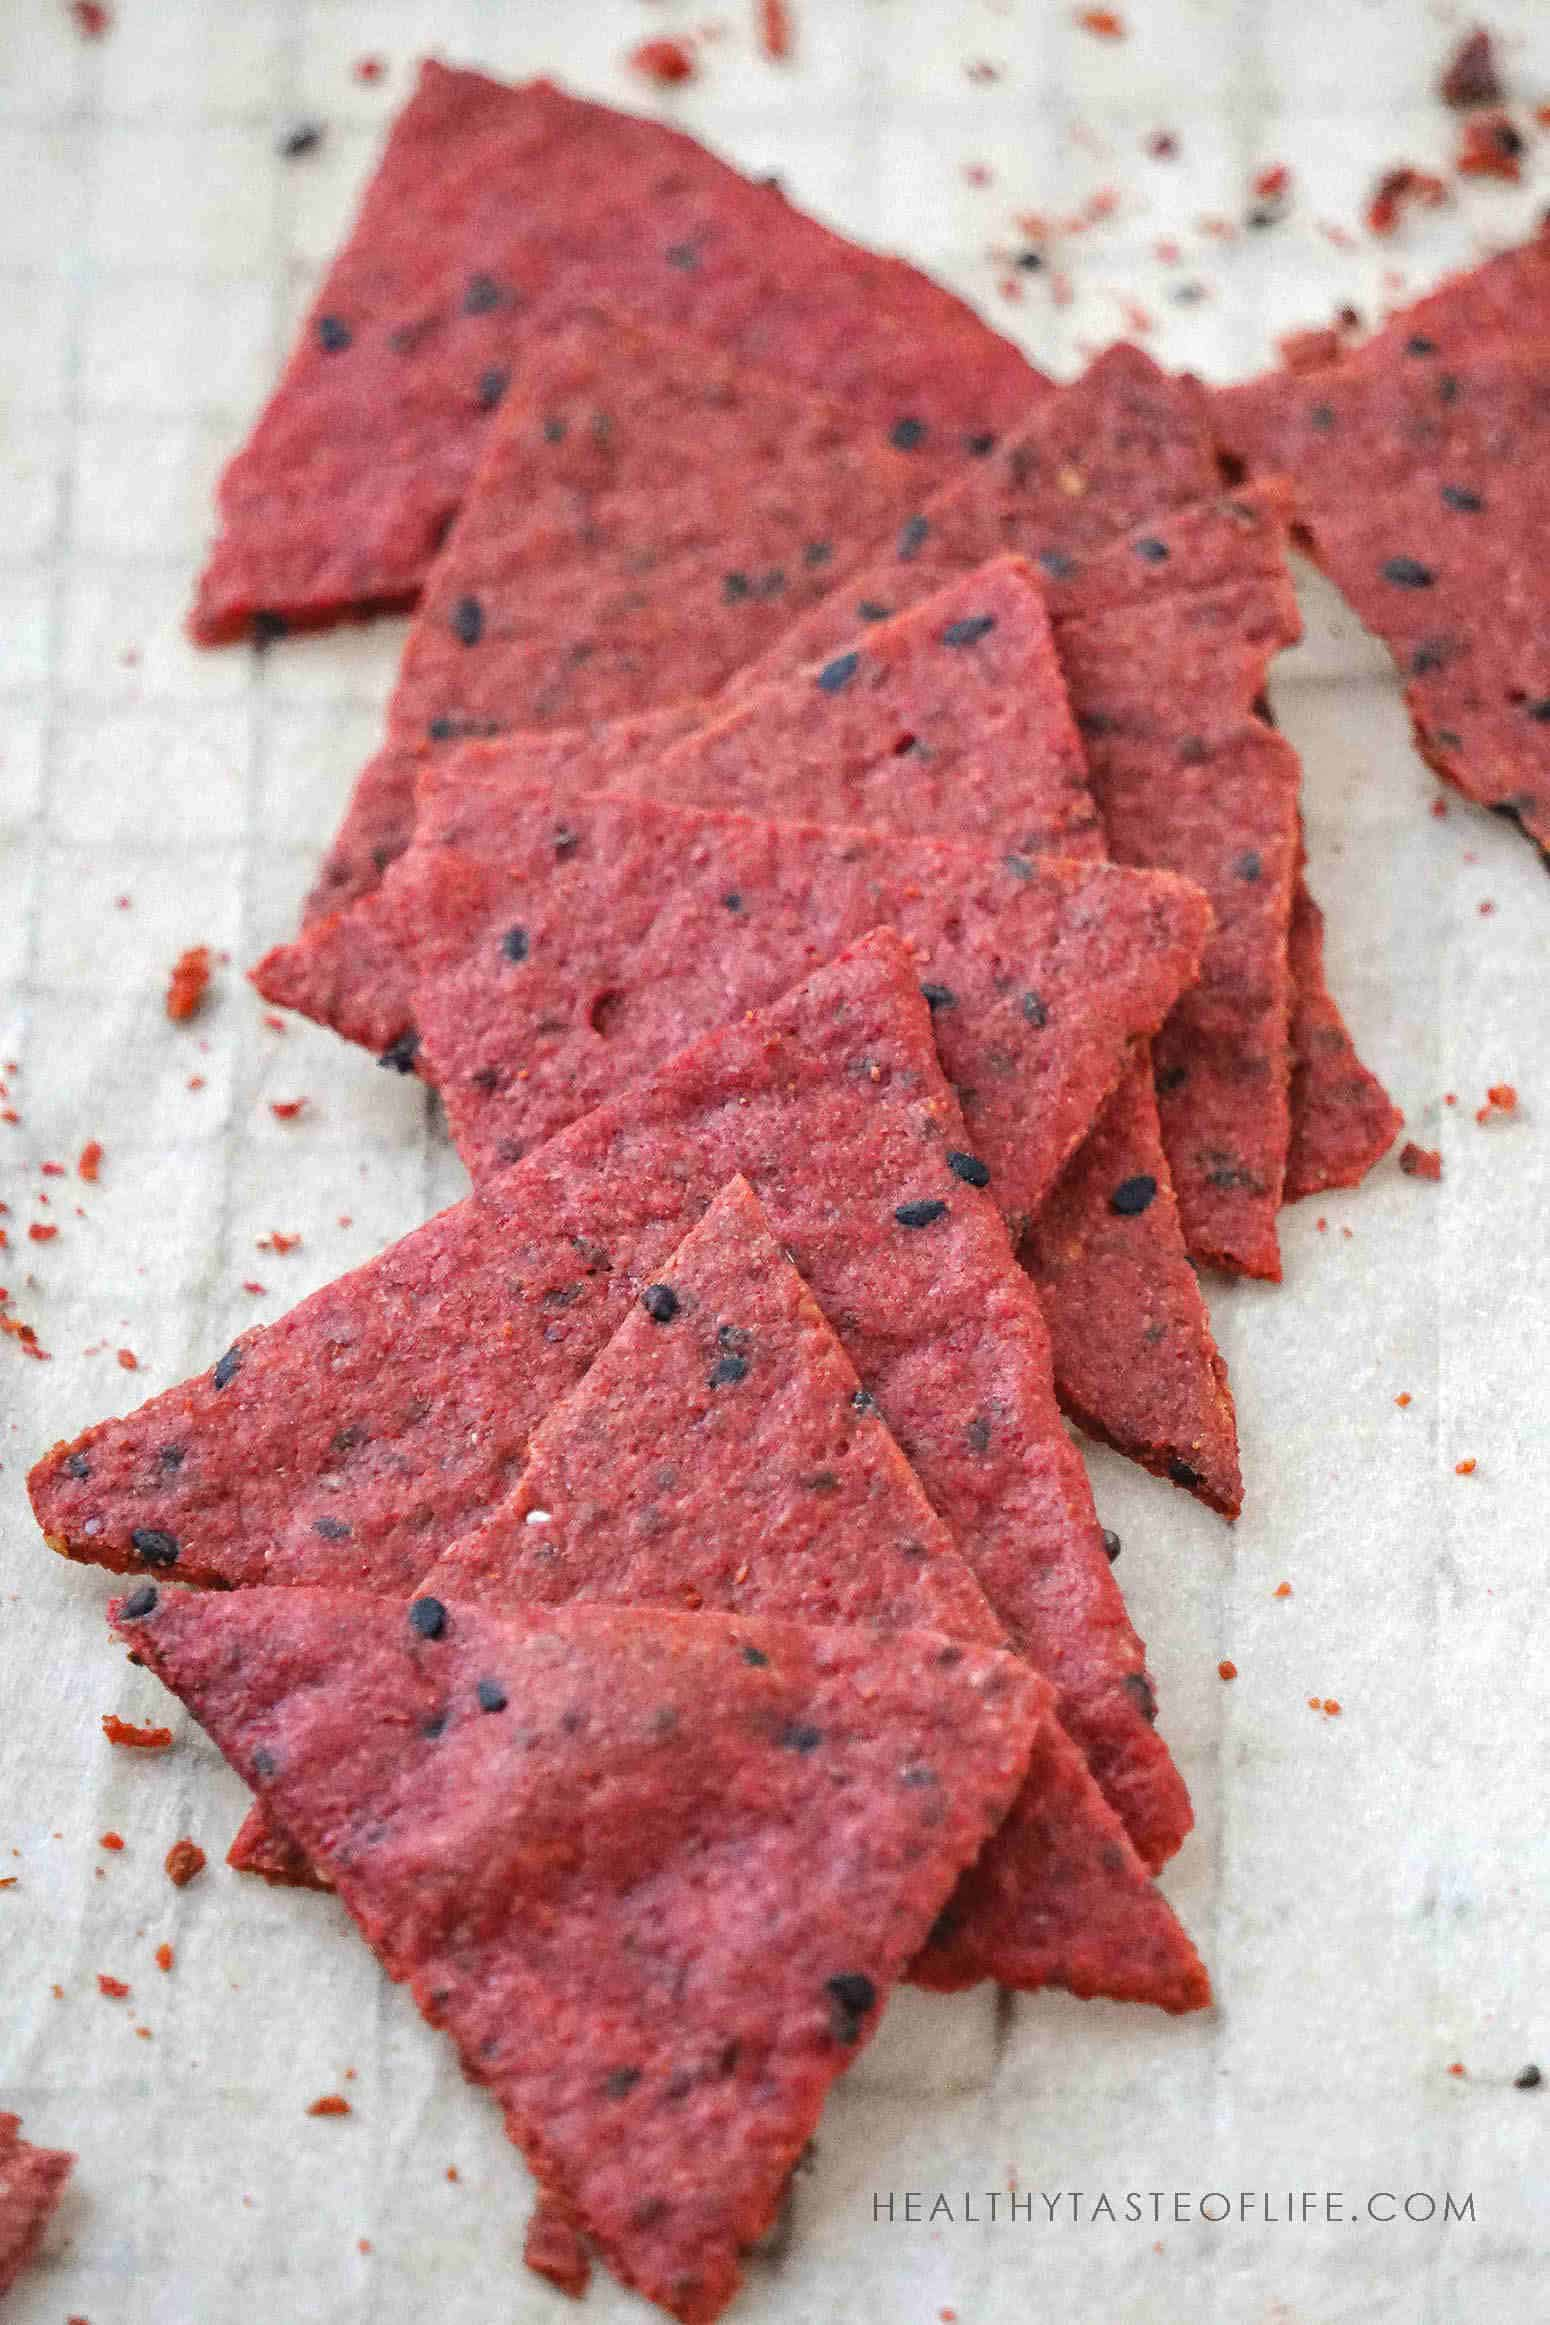 savory crackers made with red beets